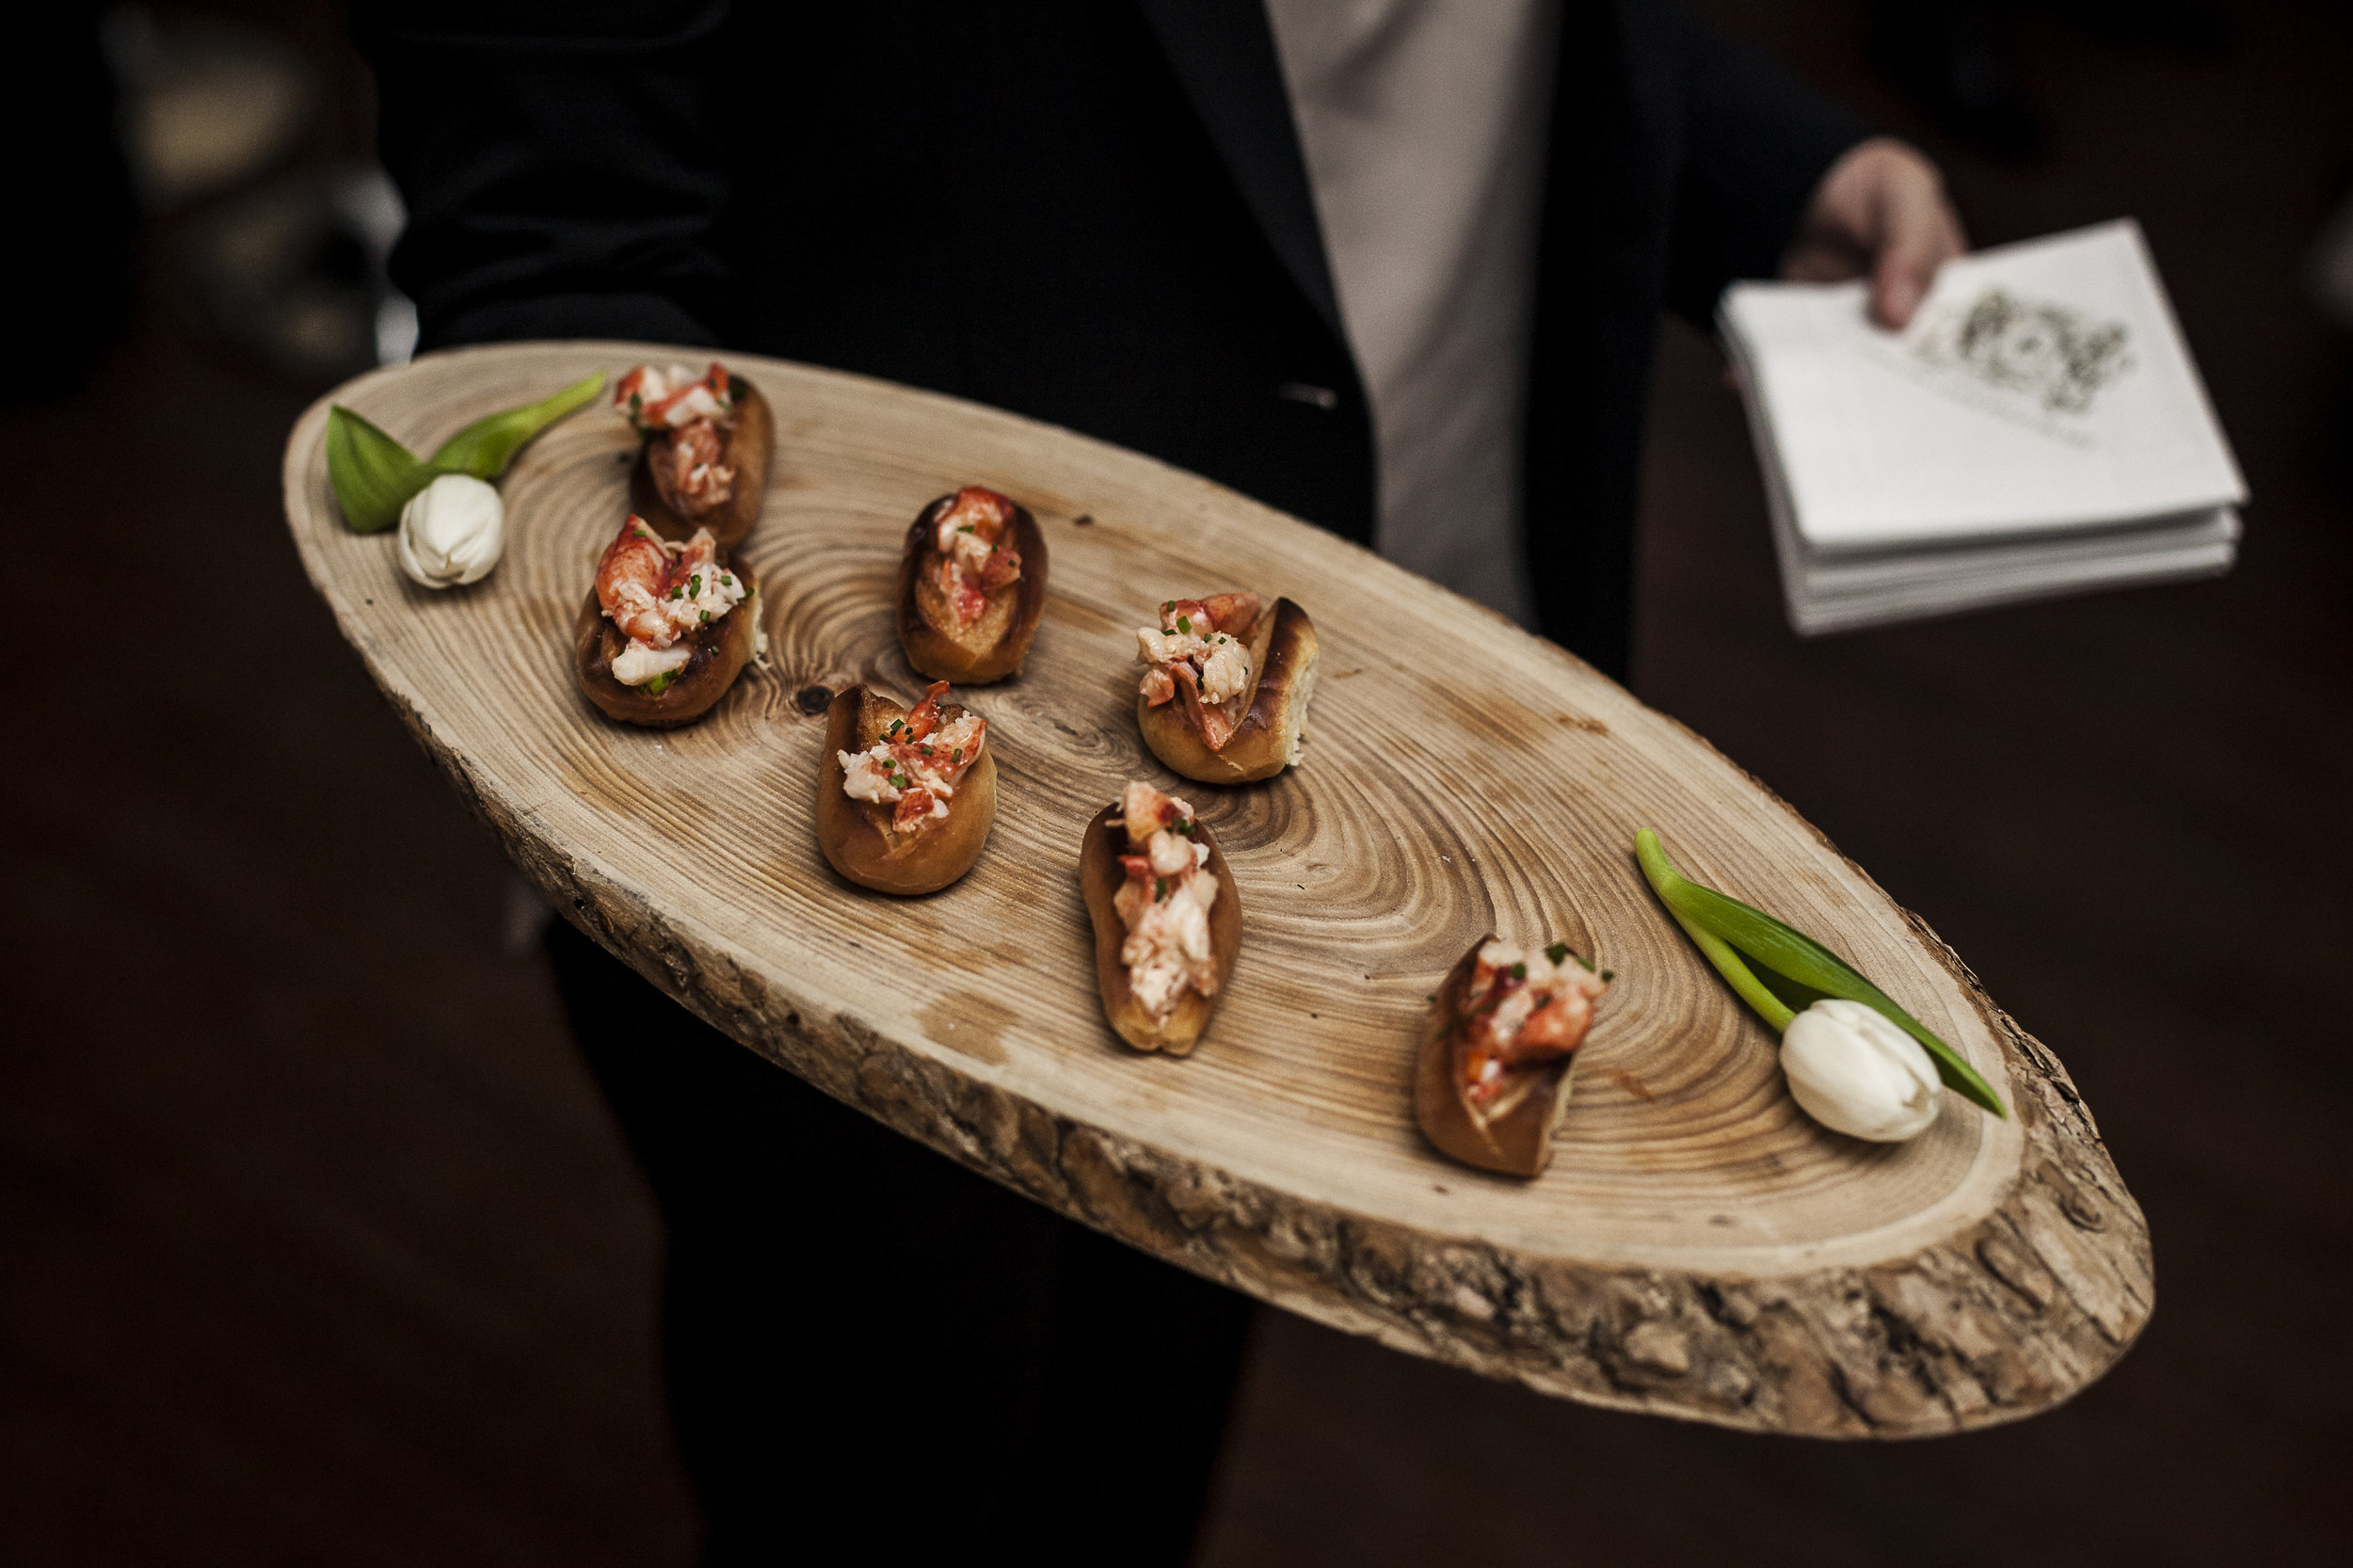 The delicious food & beverage by  On The Marc Events  was to die for, per the usual!